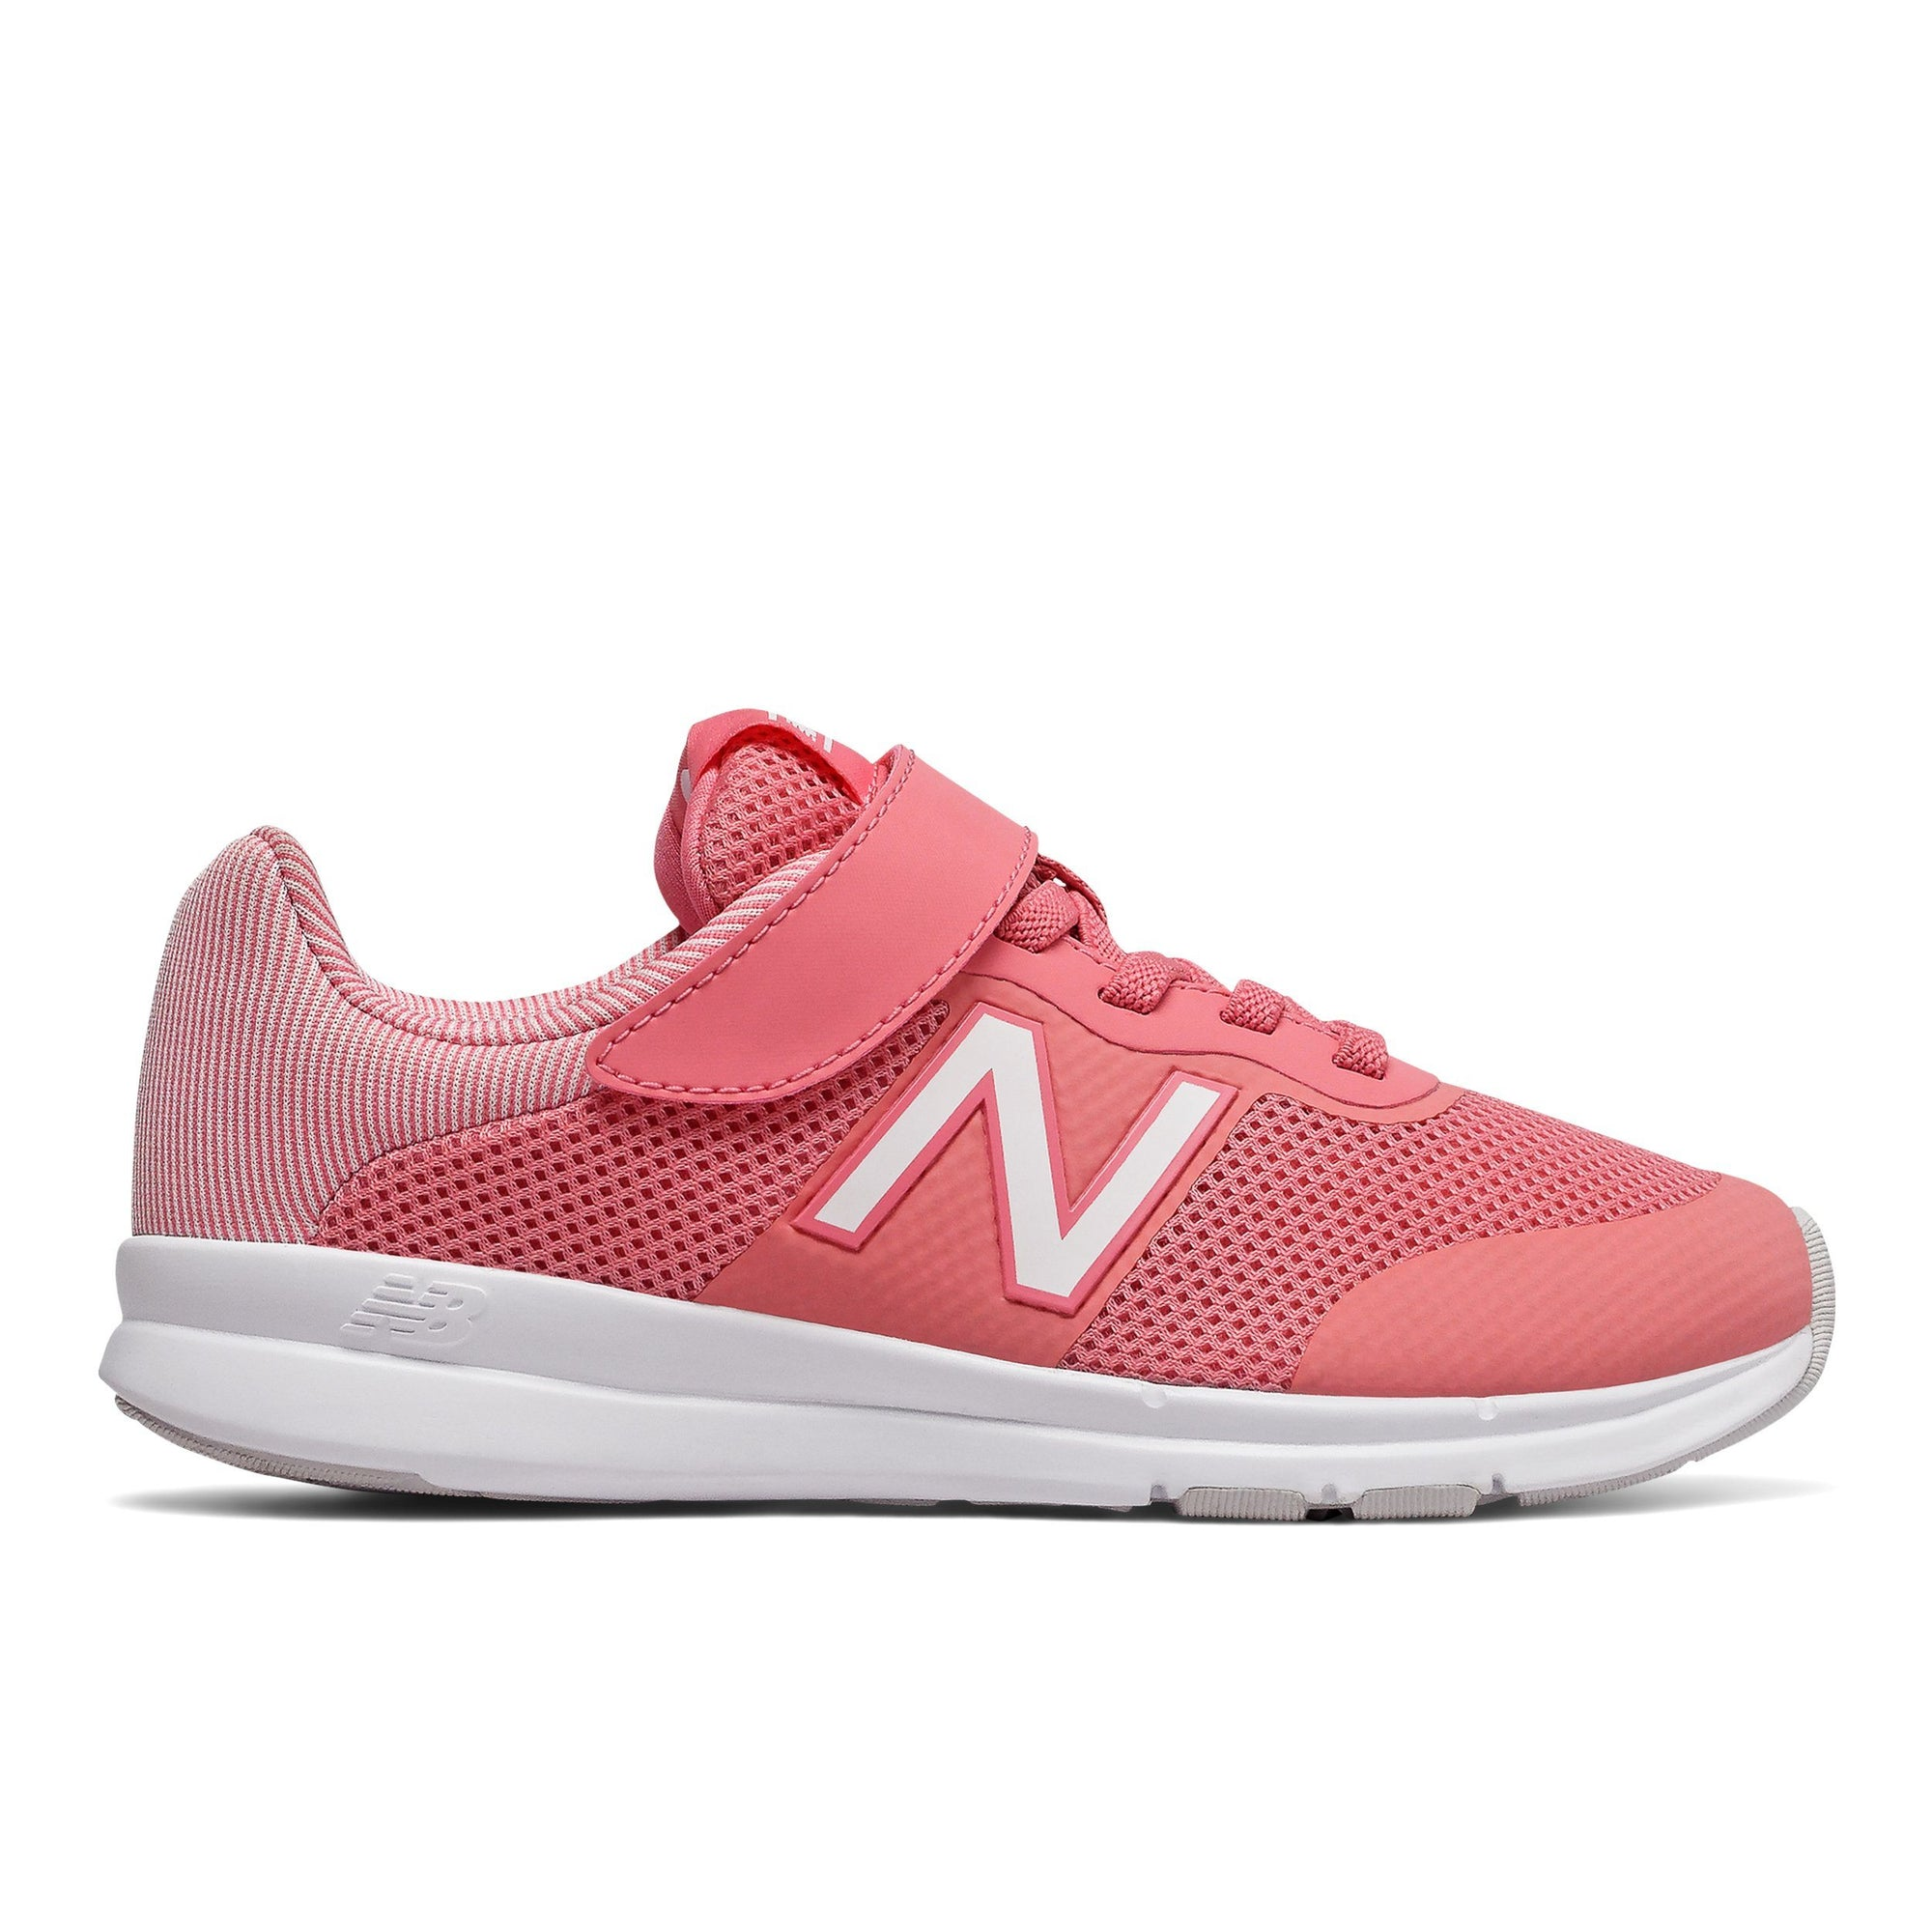 New Balance Kids Premus - Pink SP-Footwear-Kids New Balance